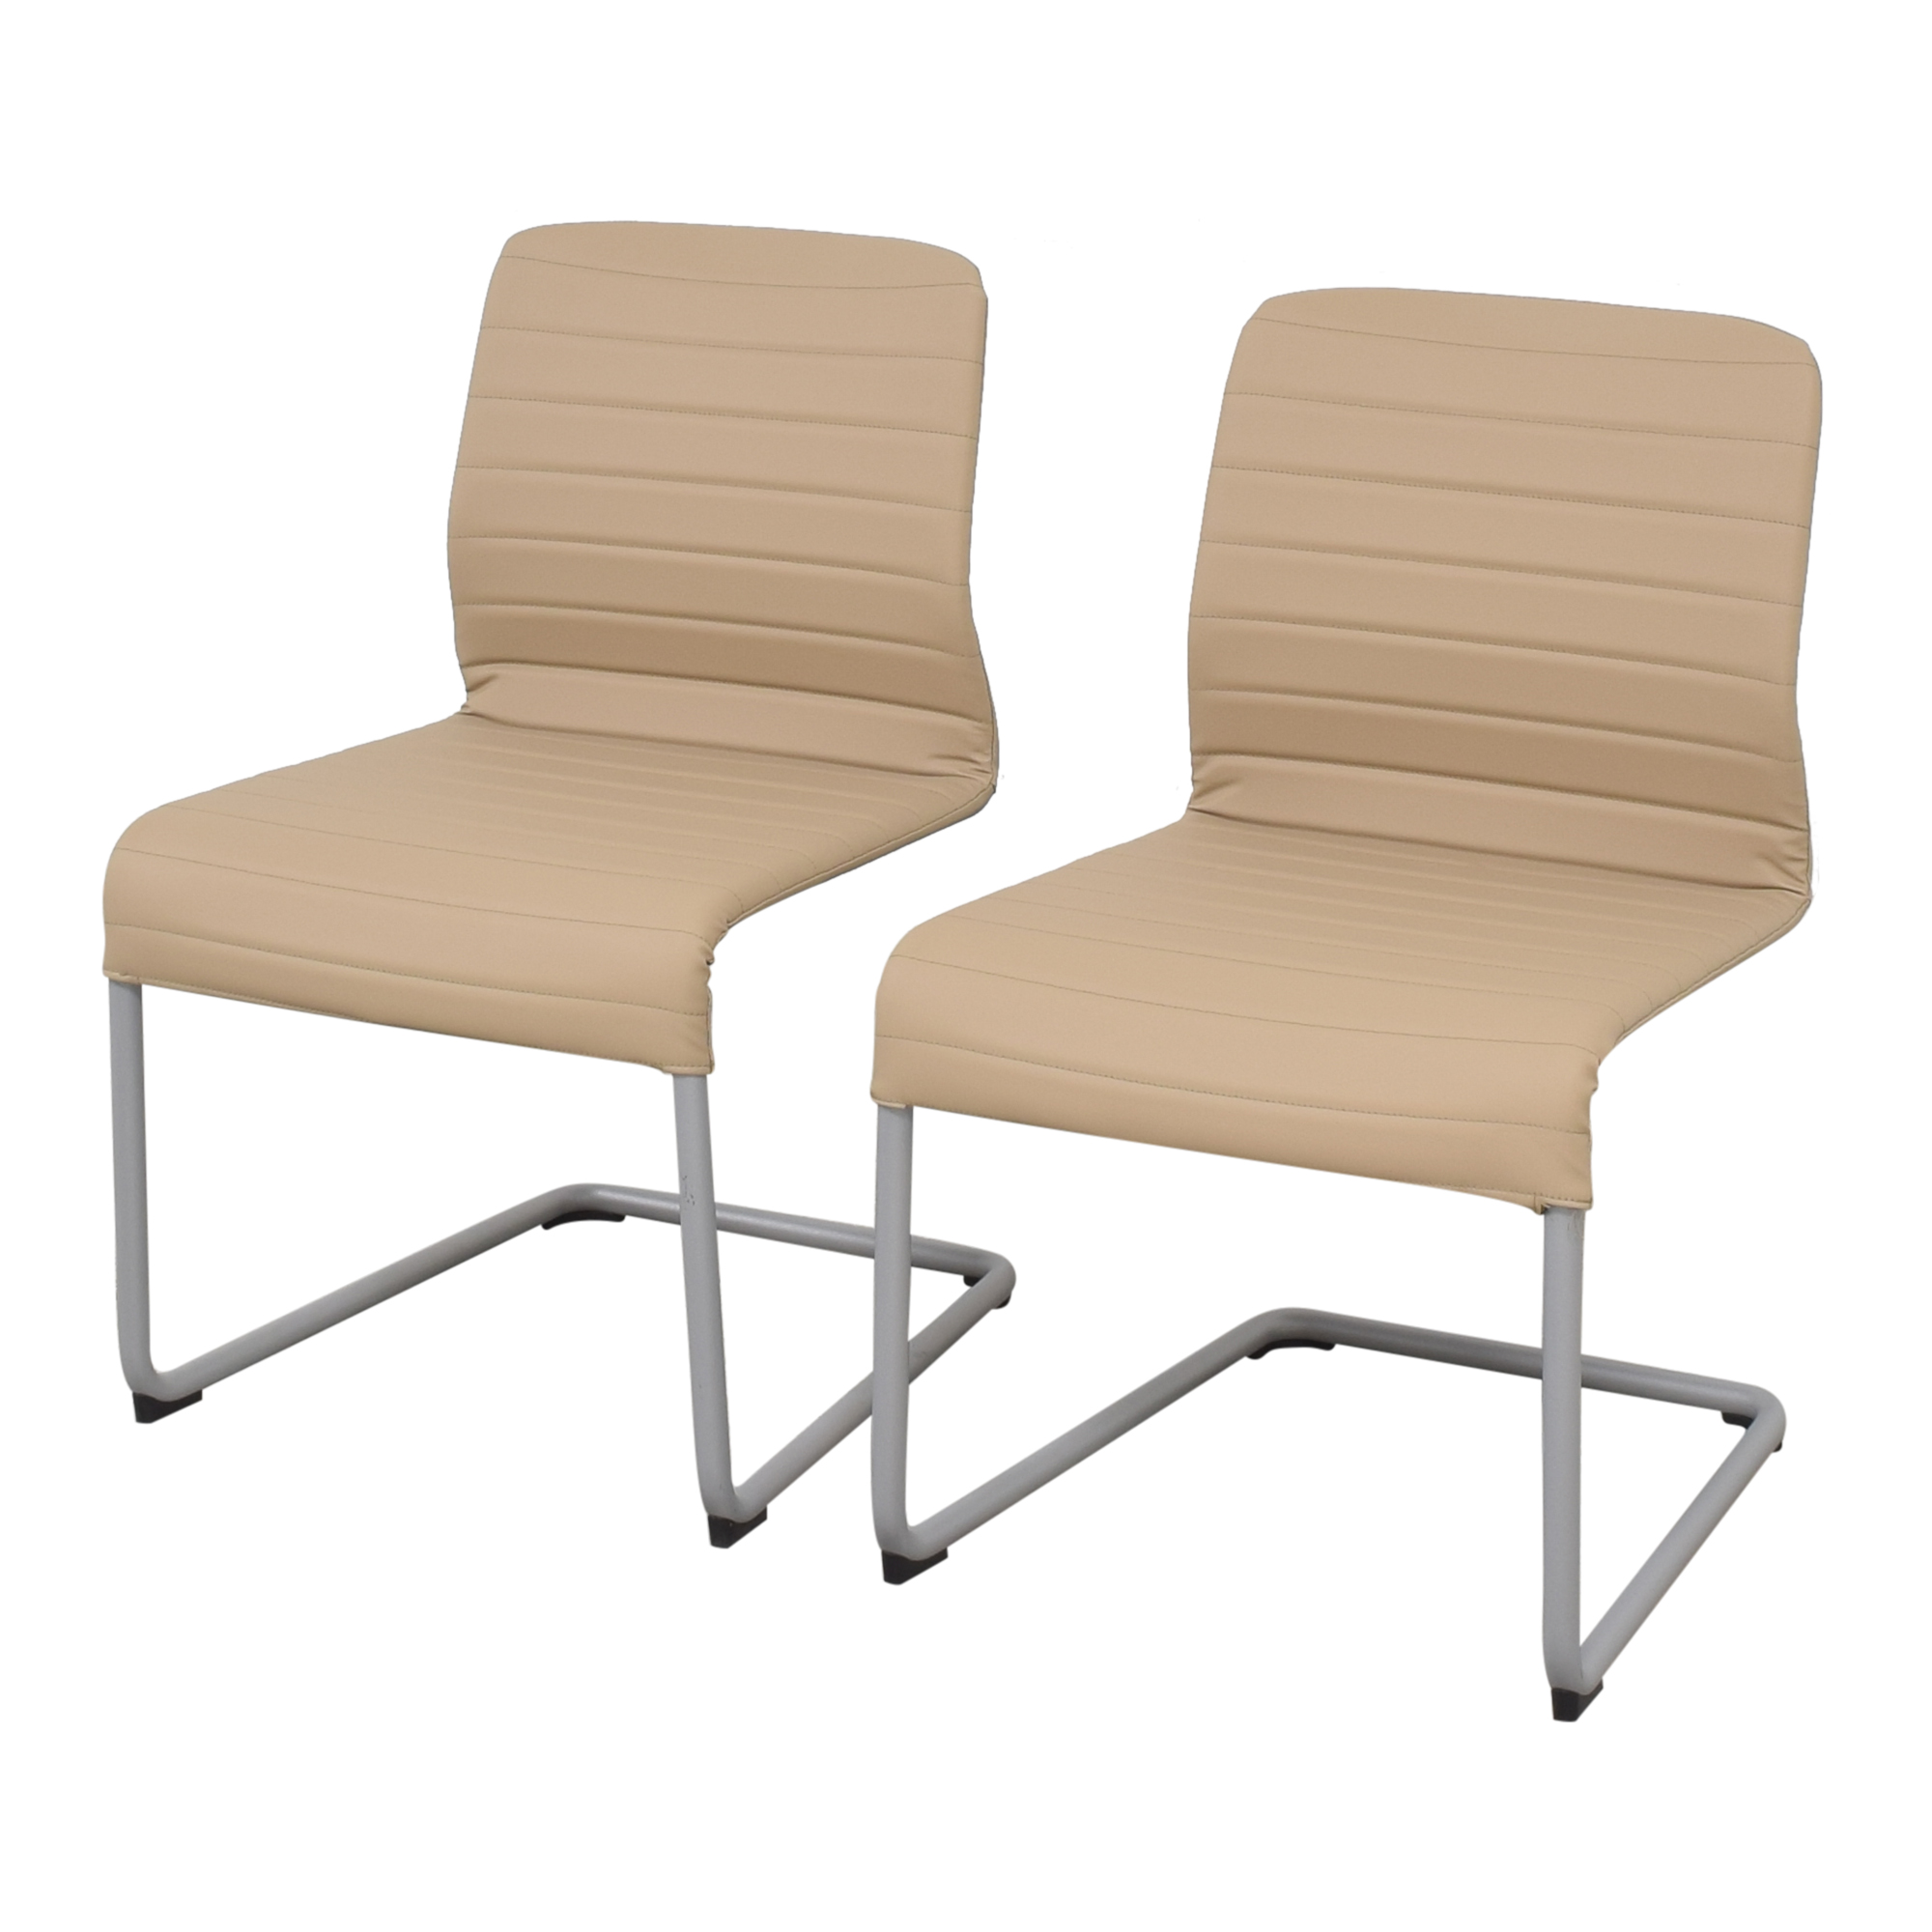 Global Furniture Group Lite Cantilever Frame Side Chairs / Home Office Chairs